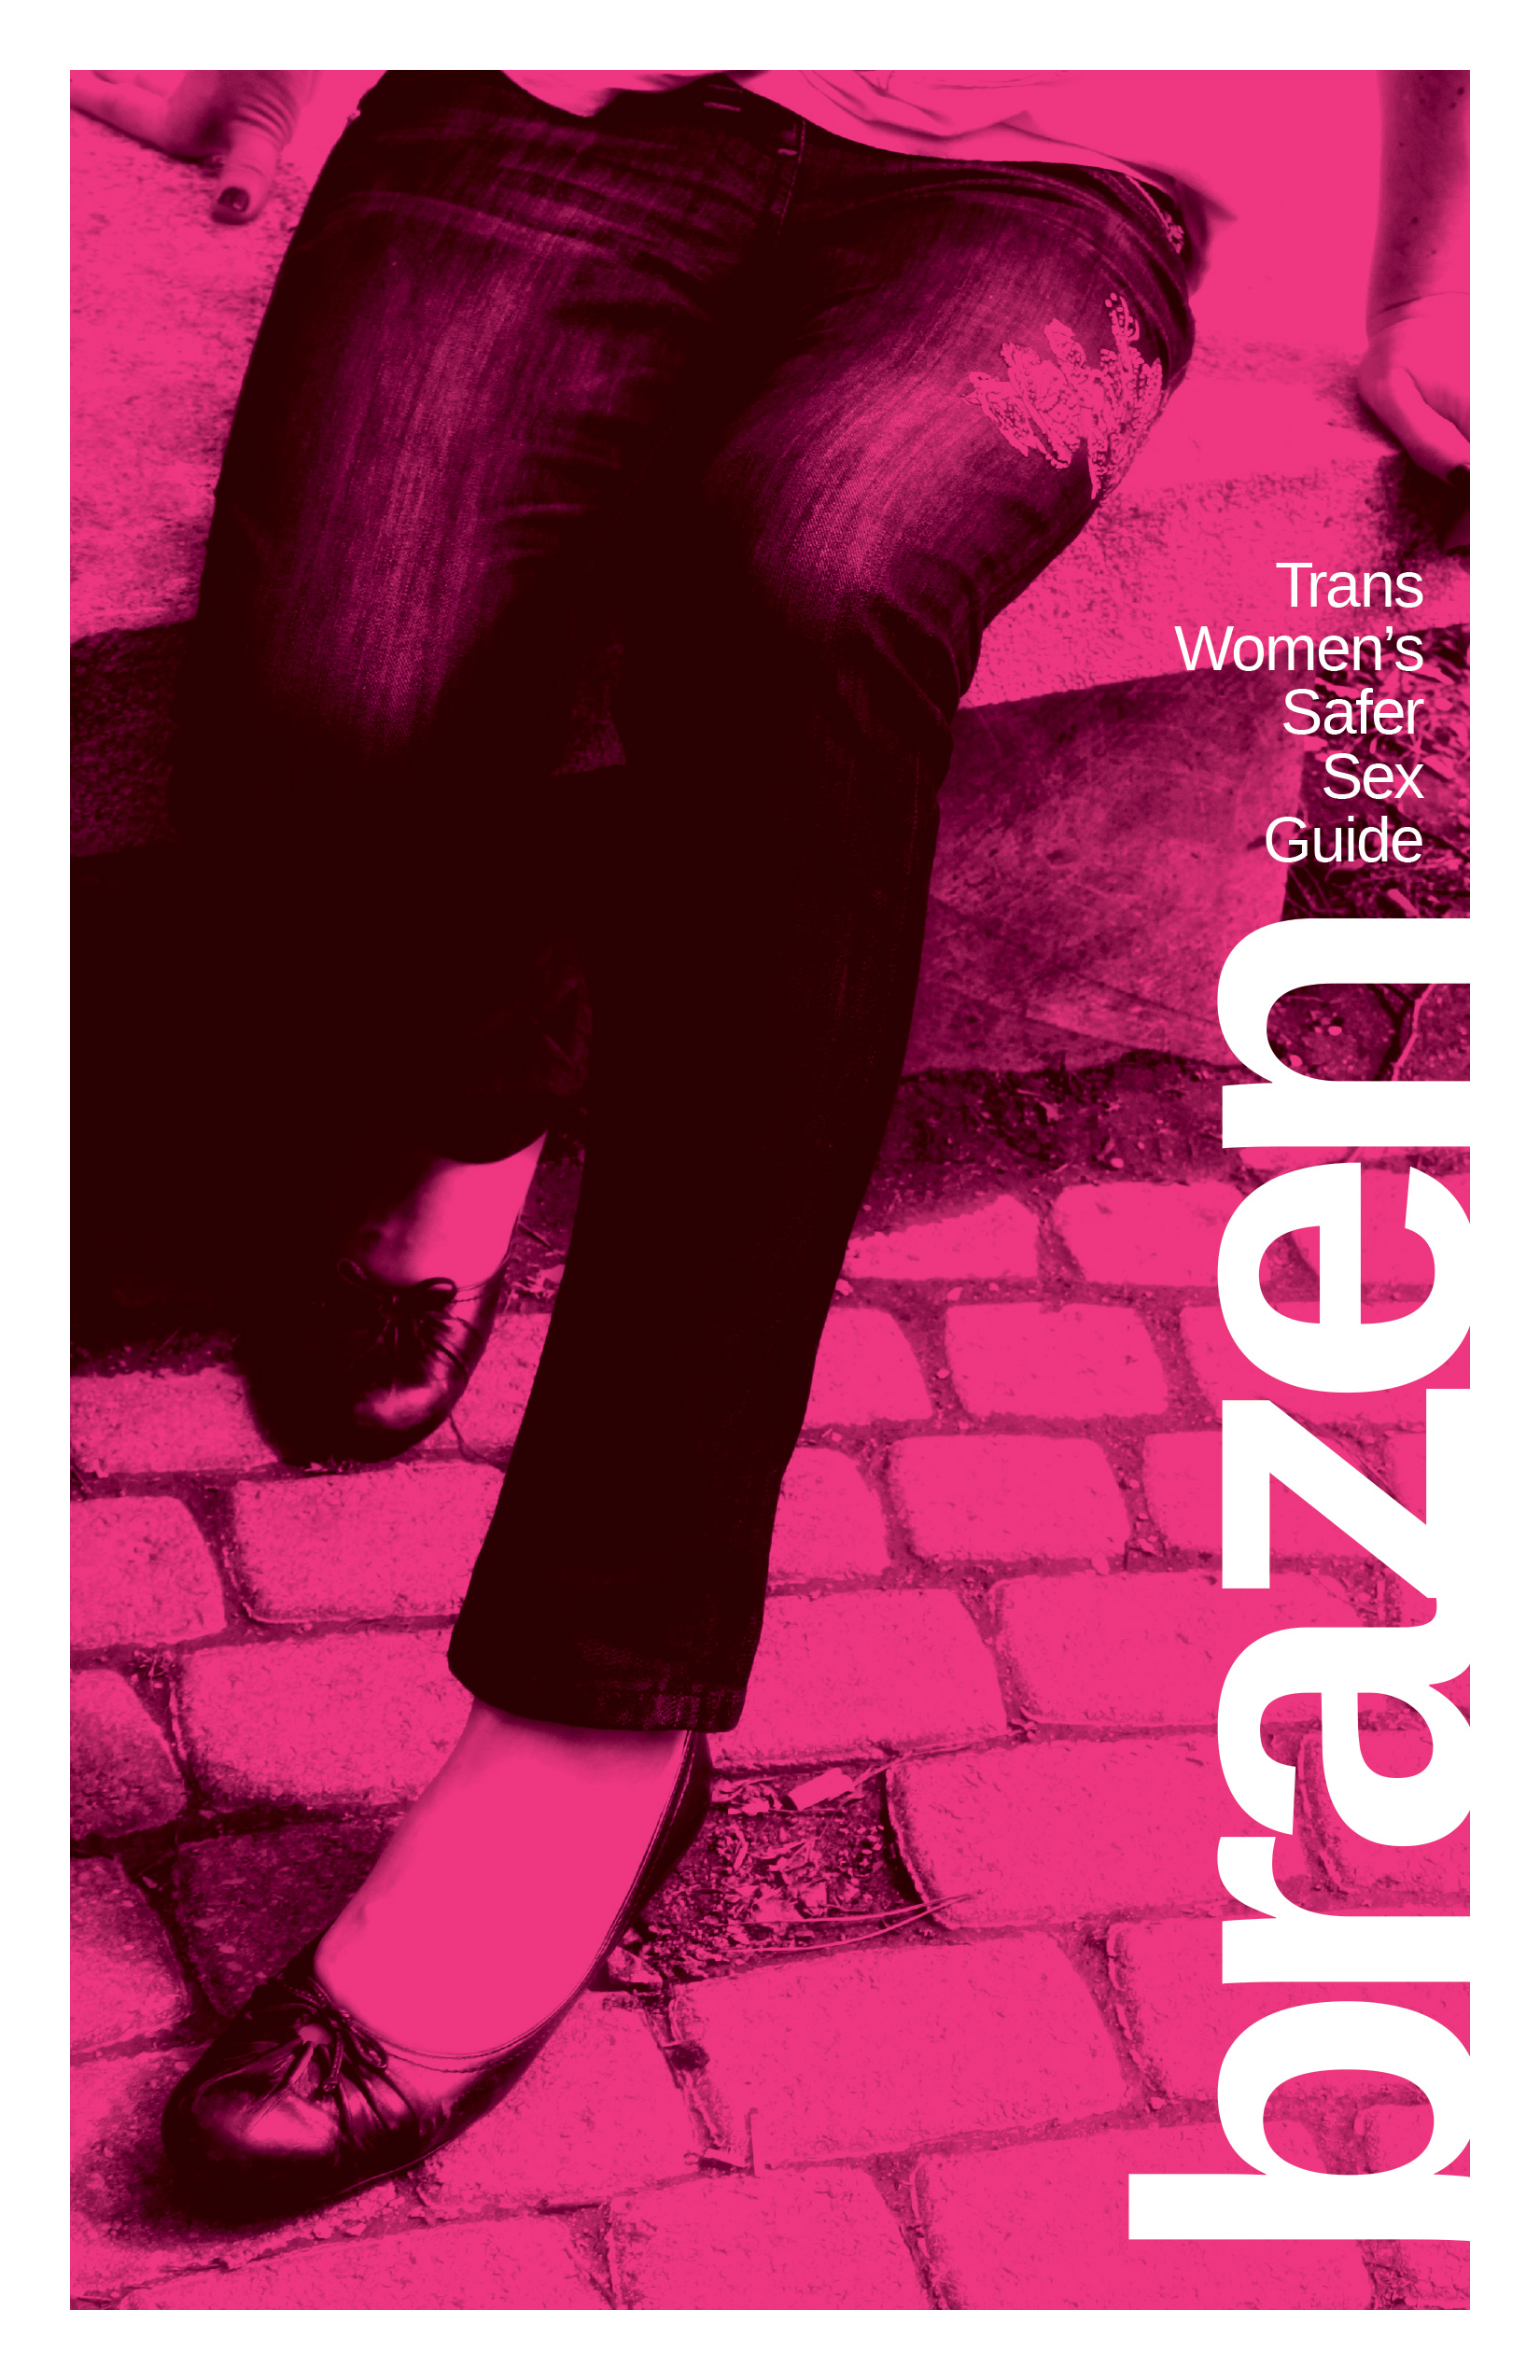 Brazen Guide Title with image of legs in jeans and heels with a bright pink overlay and guidebook title